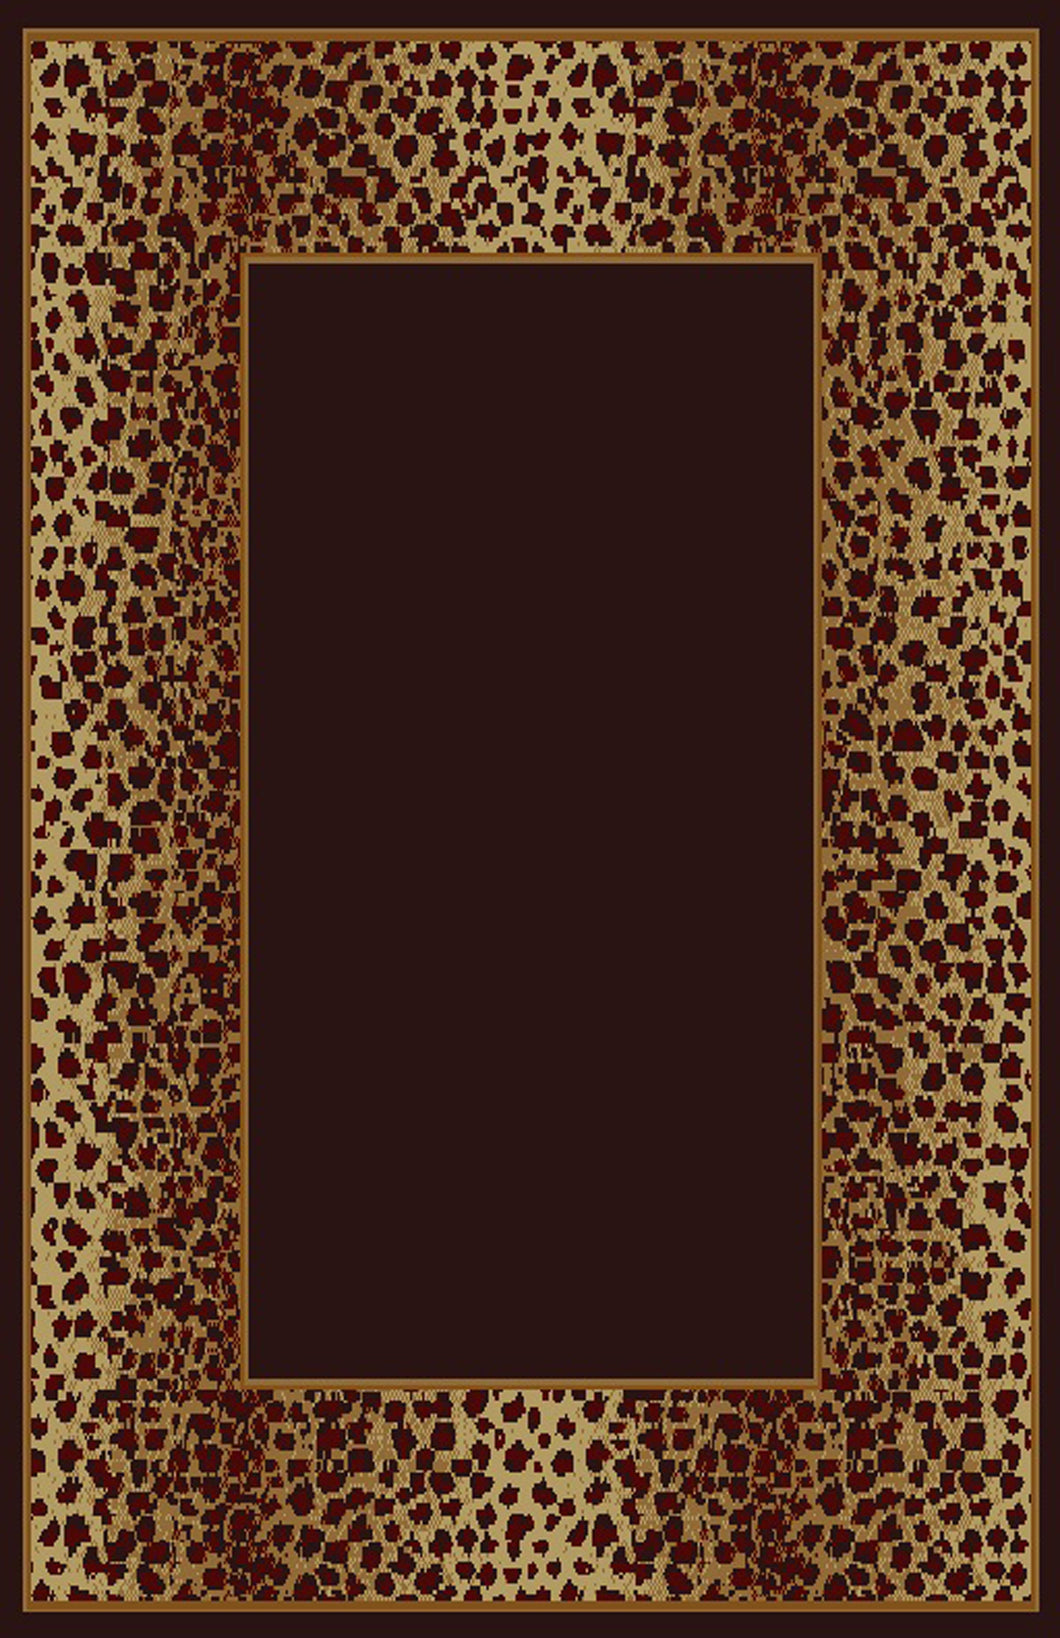 Debora Black/Brown Area Rug